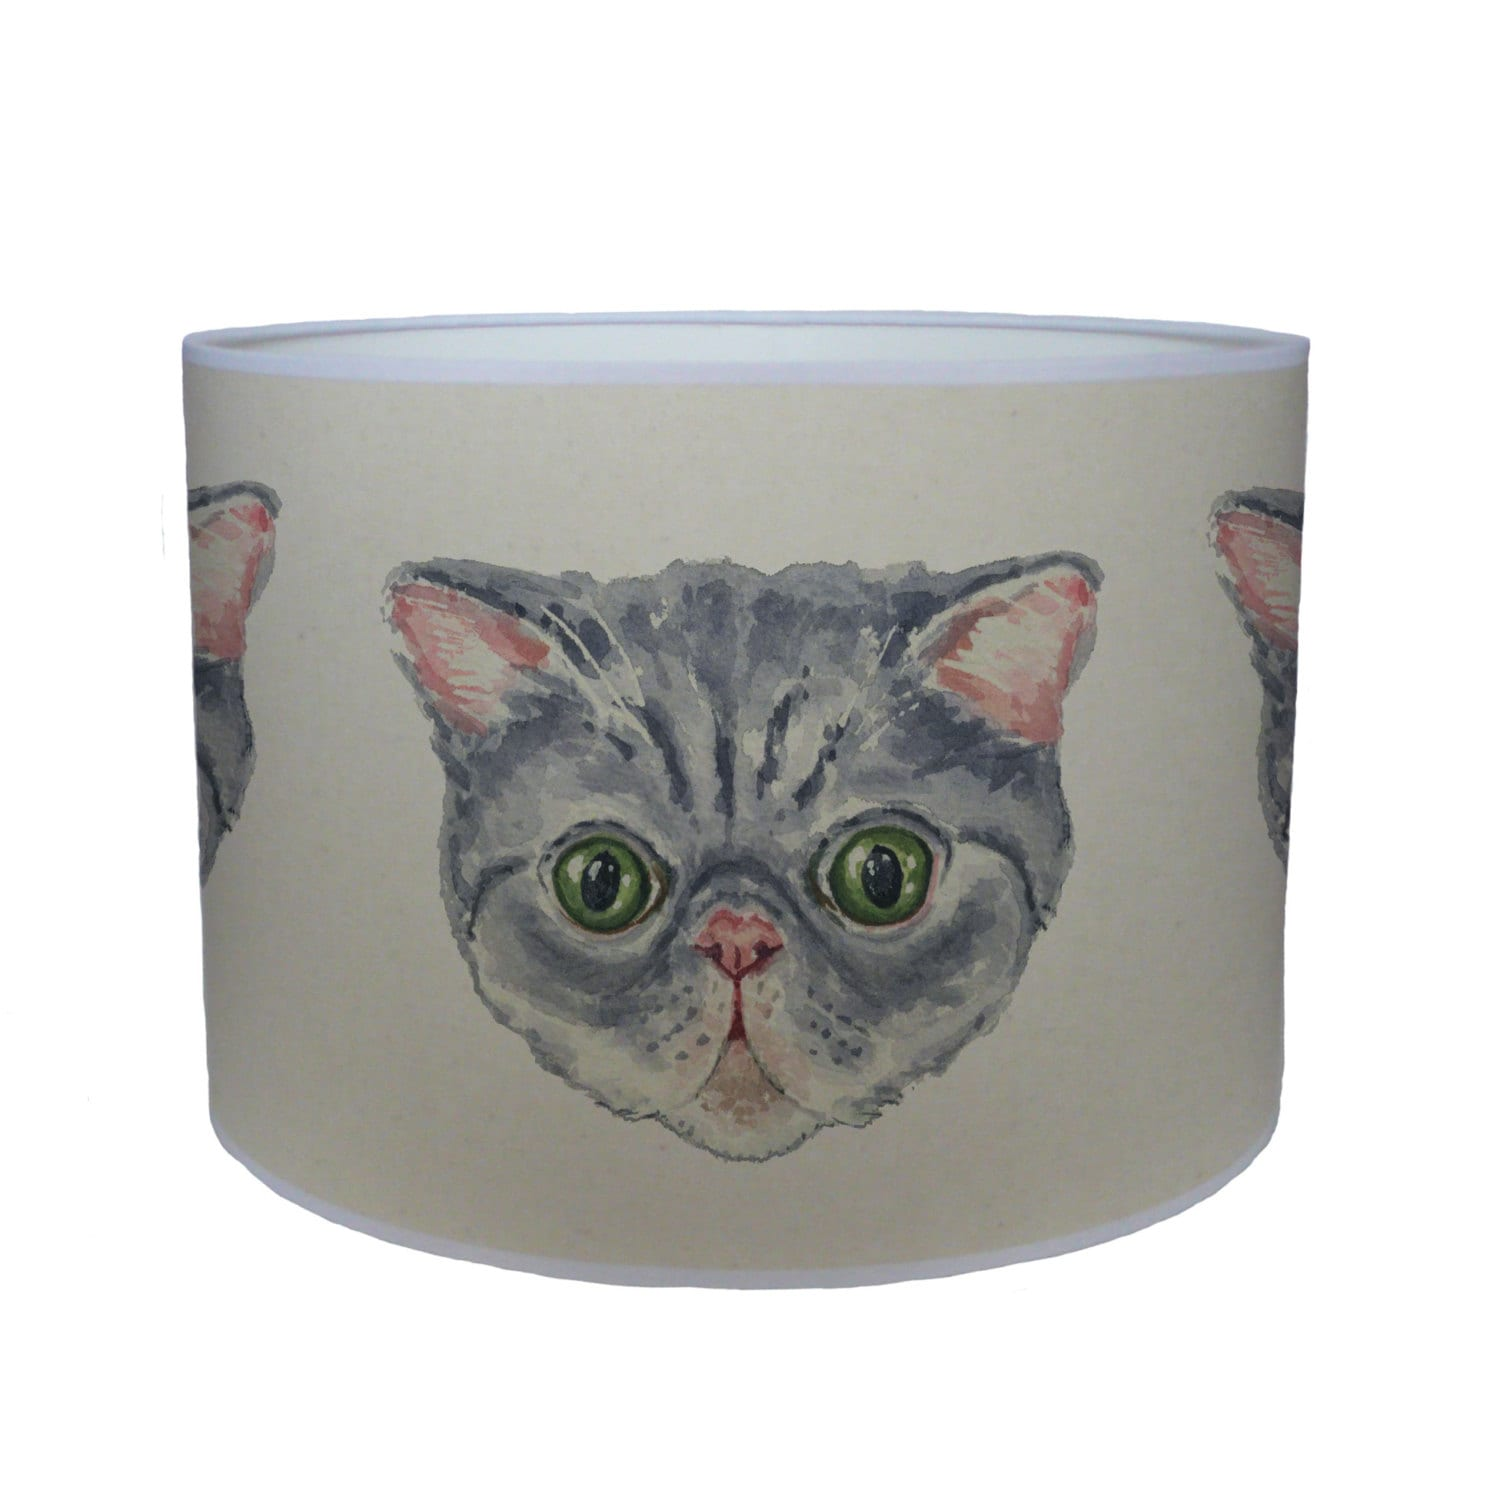 Persian cat shade lamp shade ceiling shade drum lampshade lighting handmade home